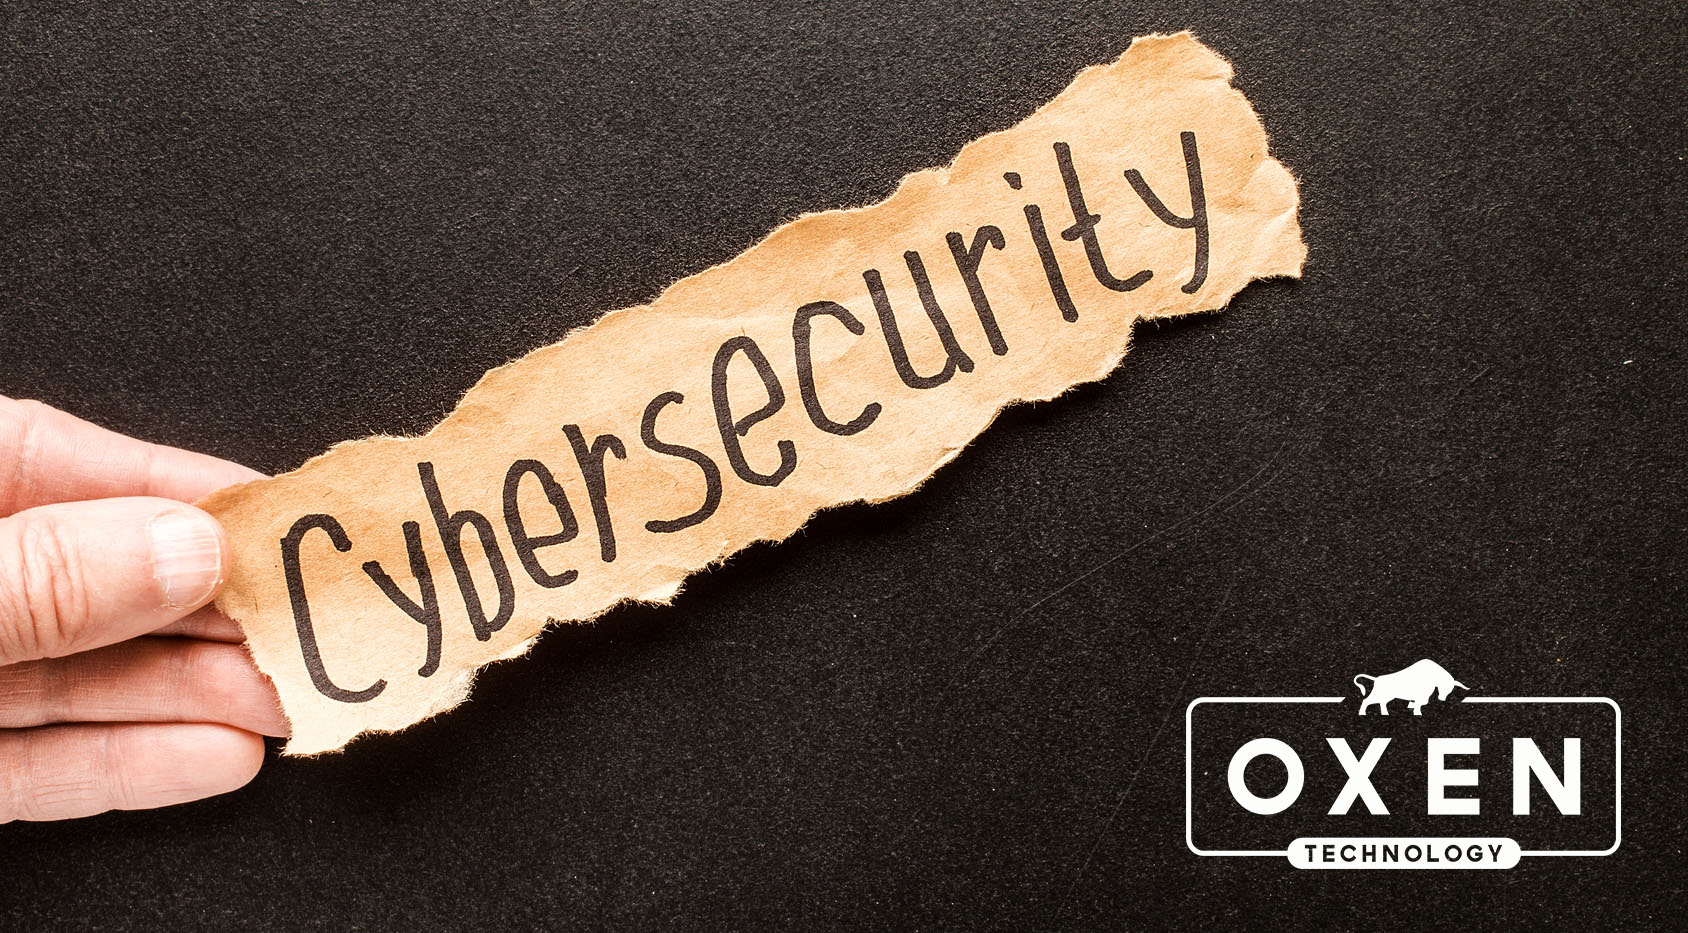 2020 Cybersecurity Update from OXEN Technology